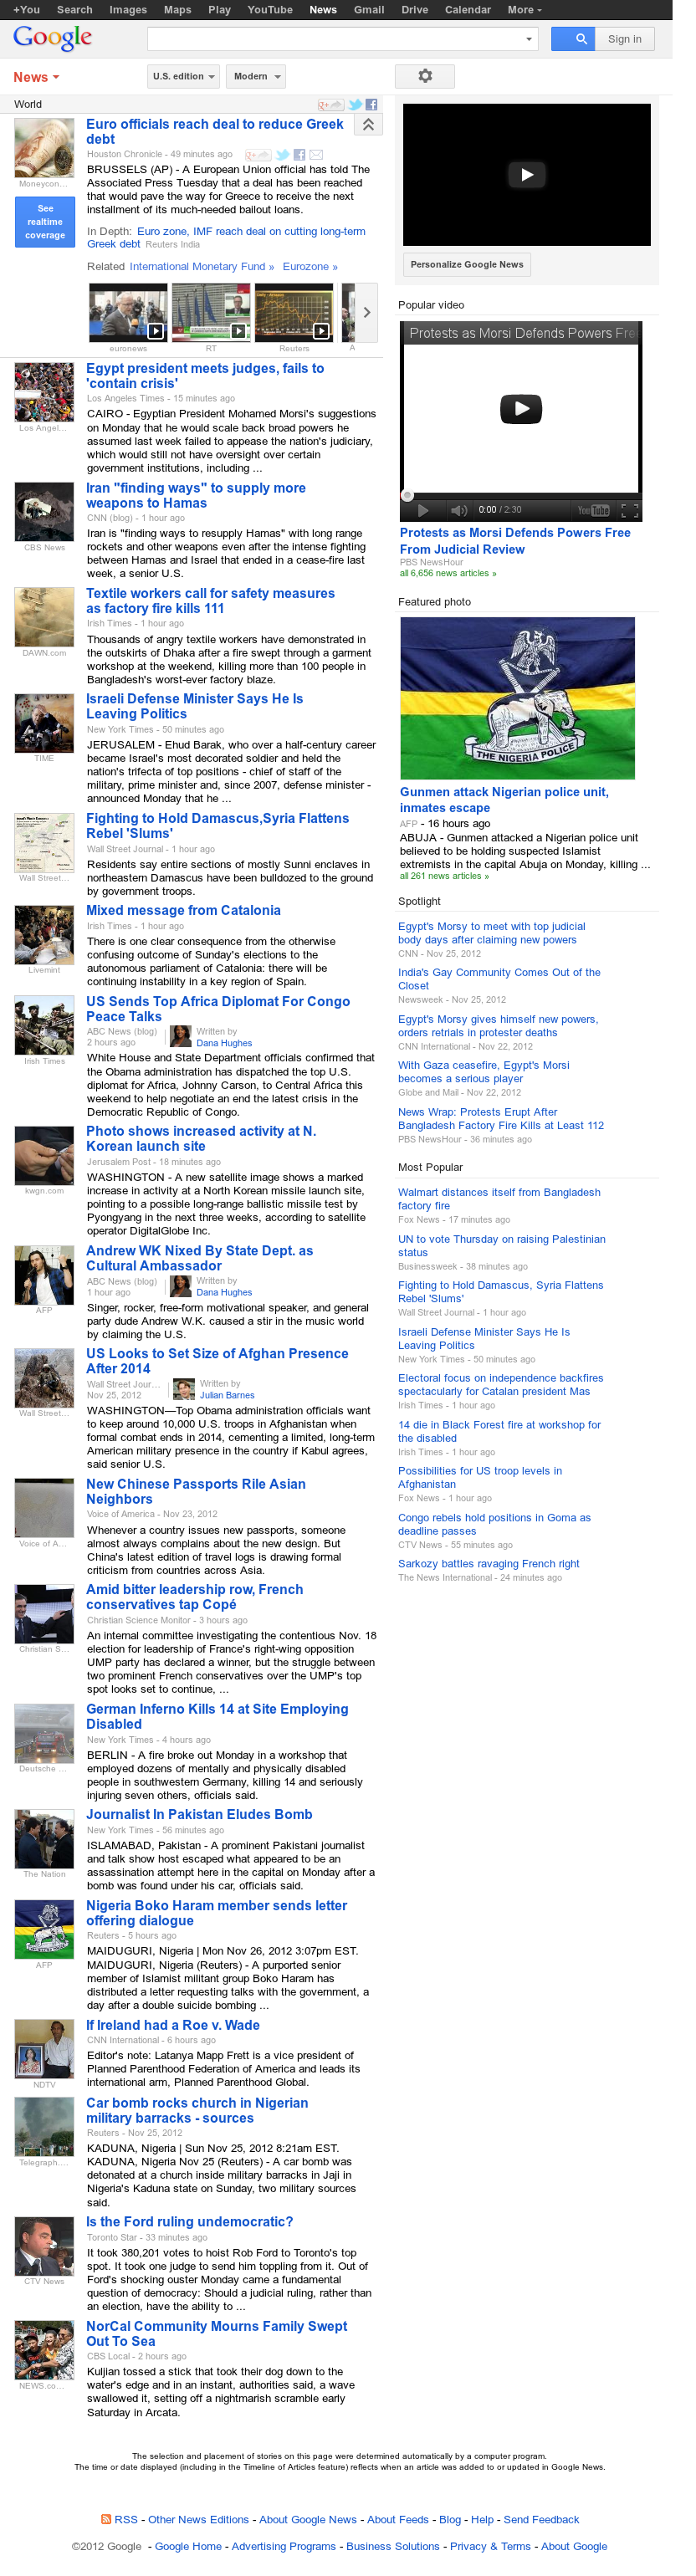 Google News: World at Tuesday Nov. 27, 2012, 2:13 a.m. UTC